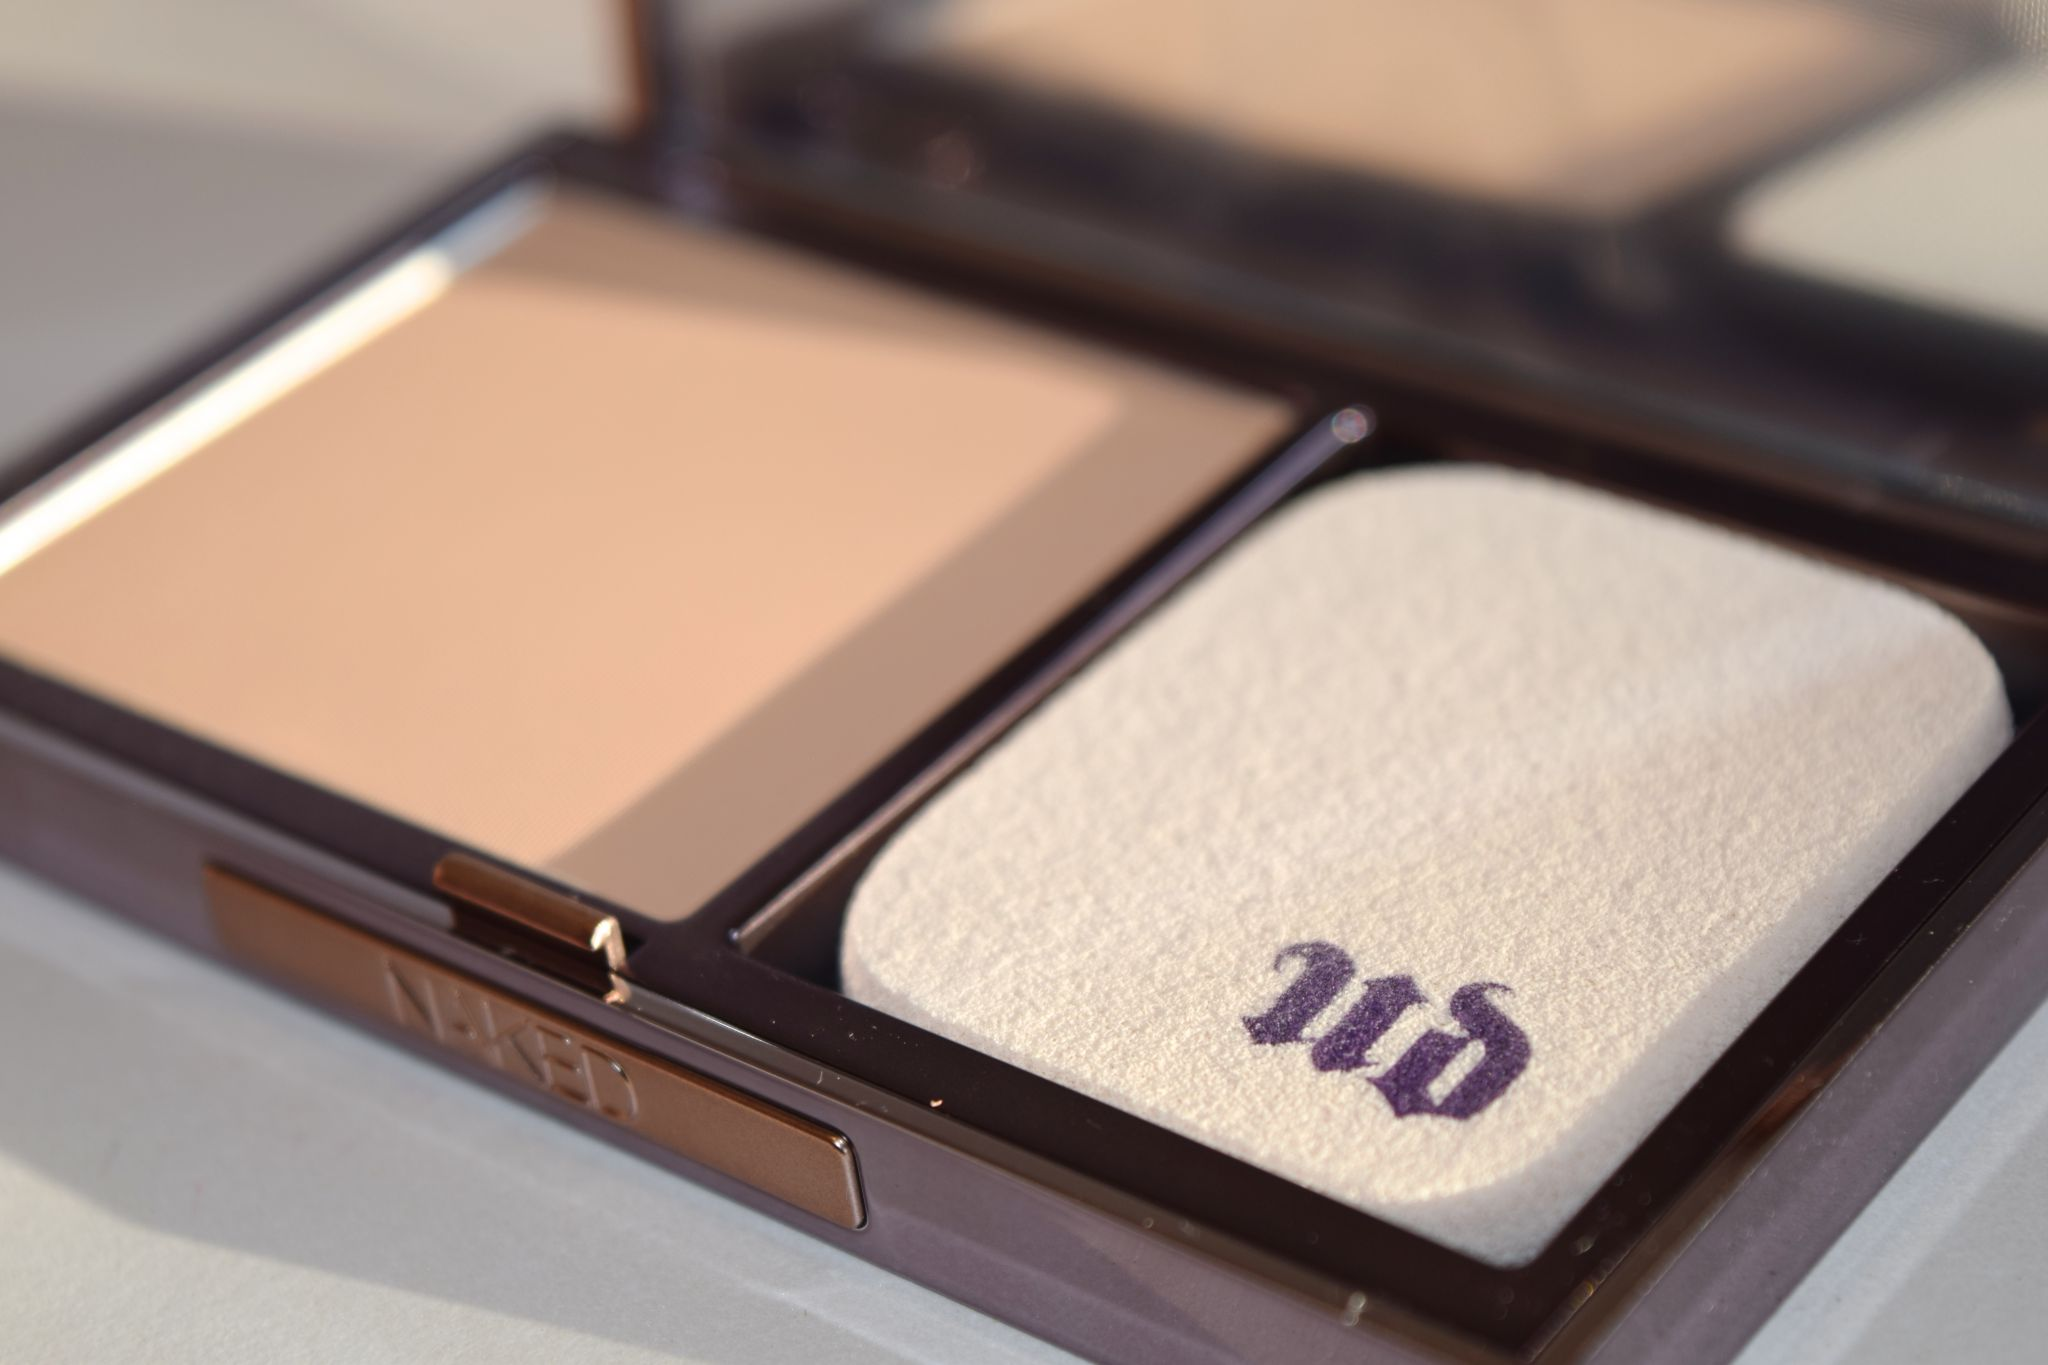 Urban Decay Naked Powder Foundation2